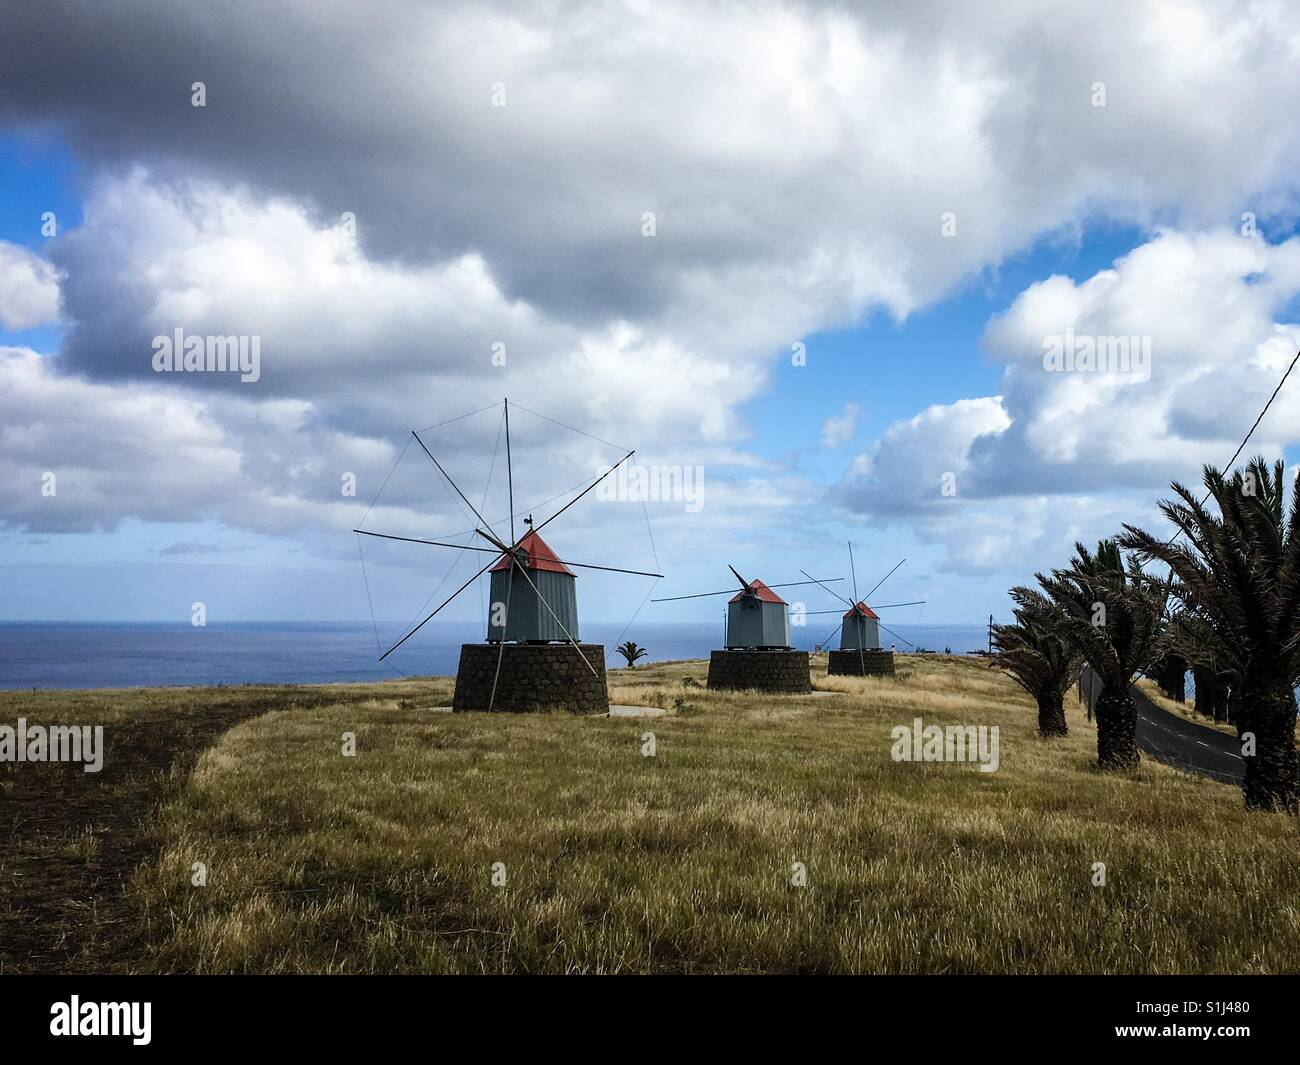 The windmill landscape of Porto Santo, Madeira, Portugal - Stock Image